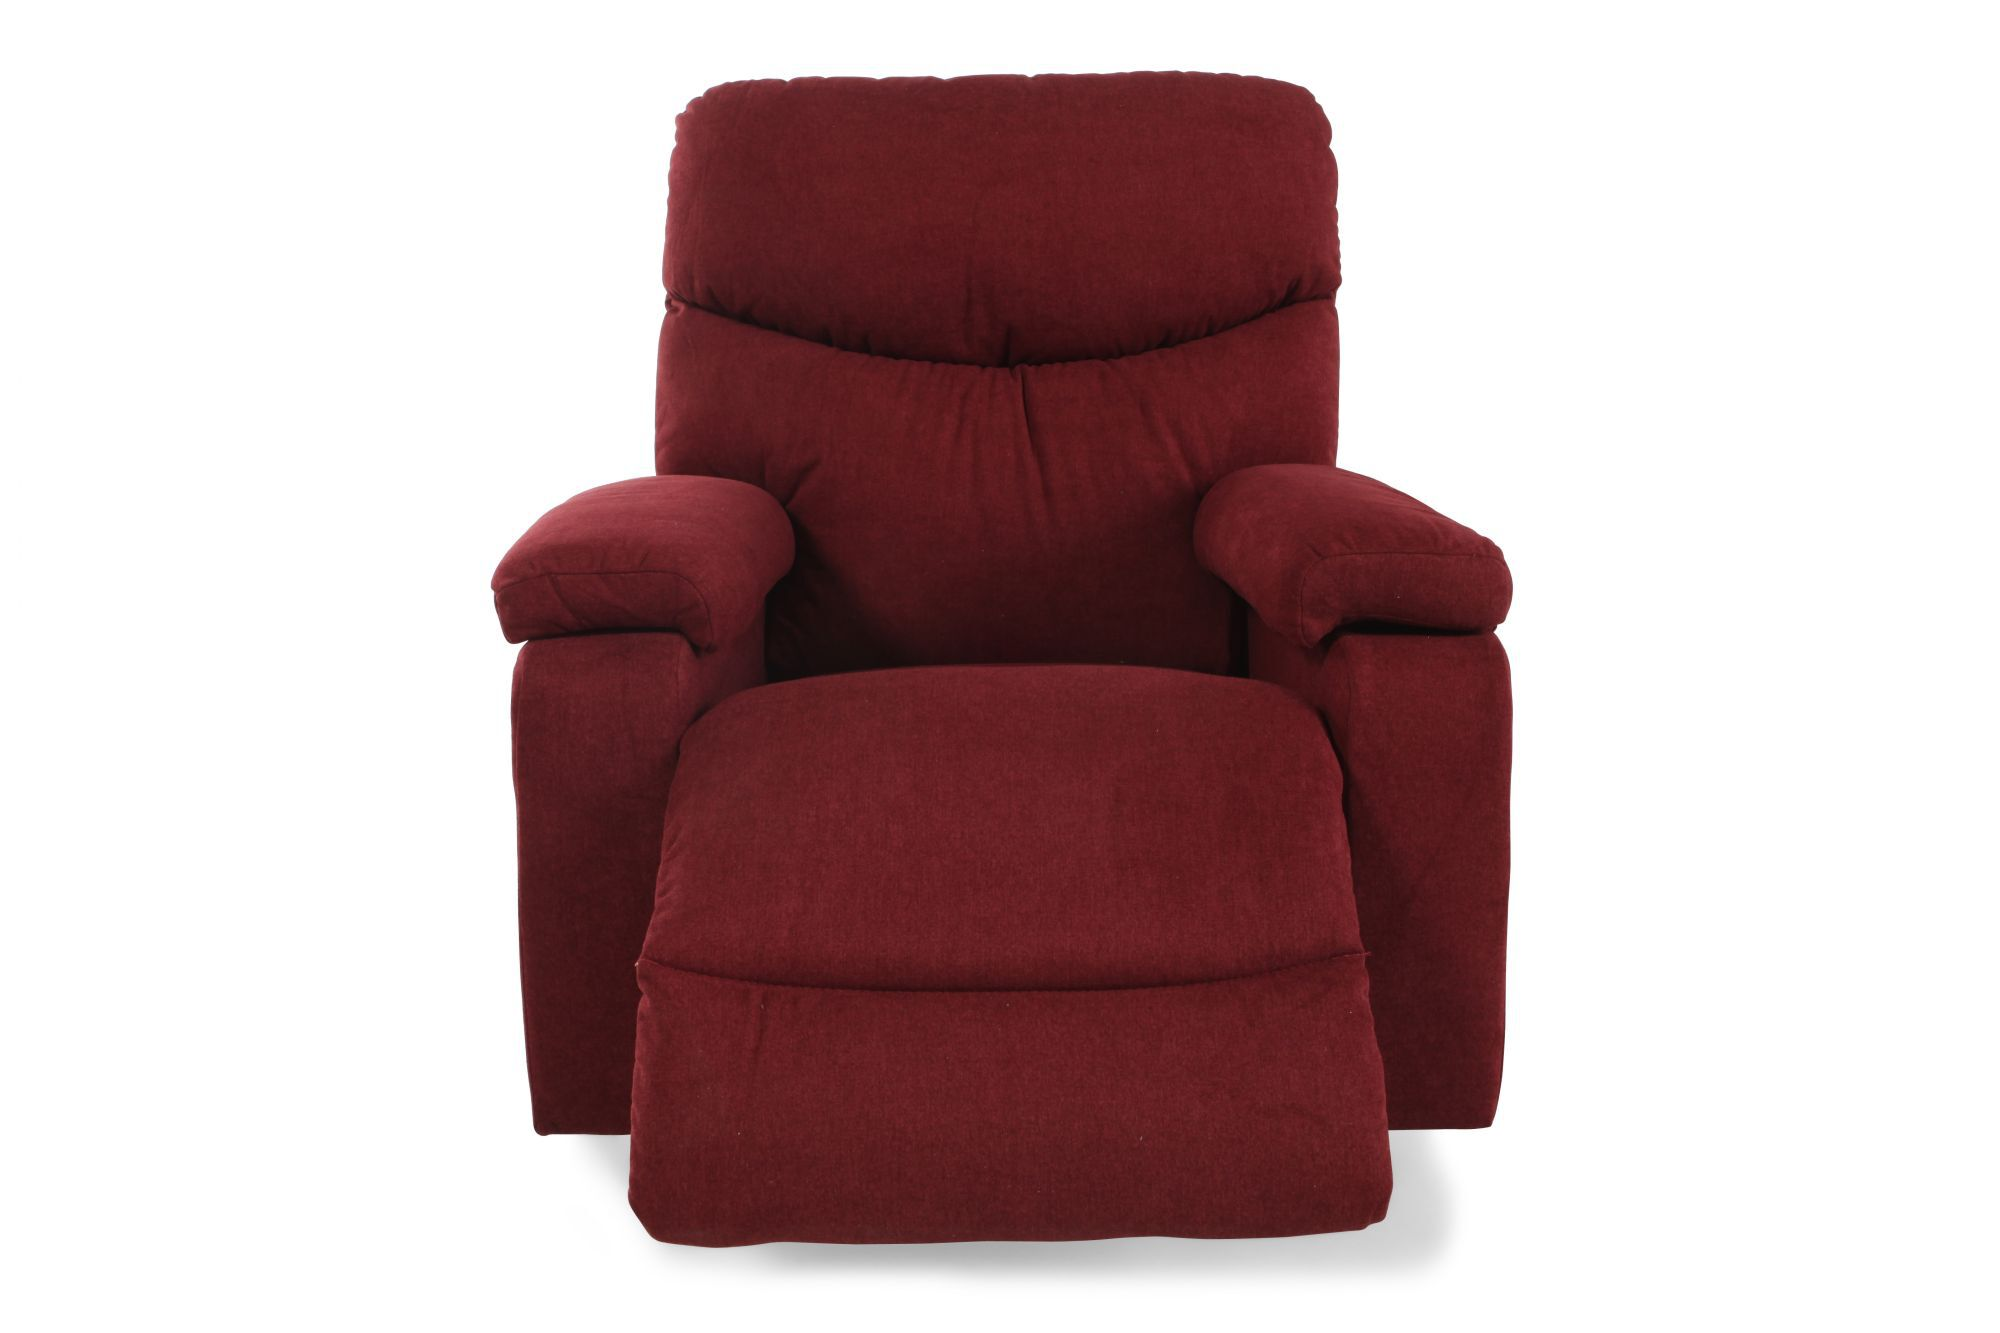 Storage Compartment Rocker Recliner In Berry Red Mathis